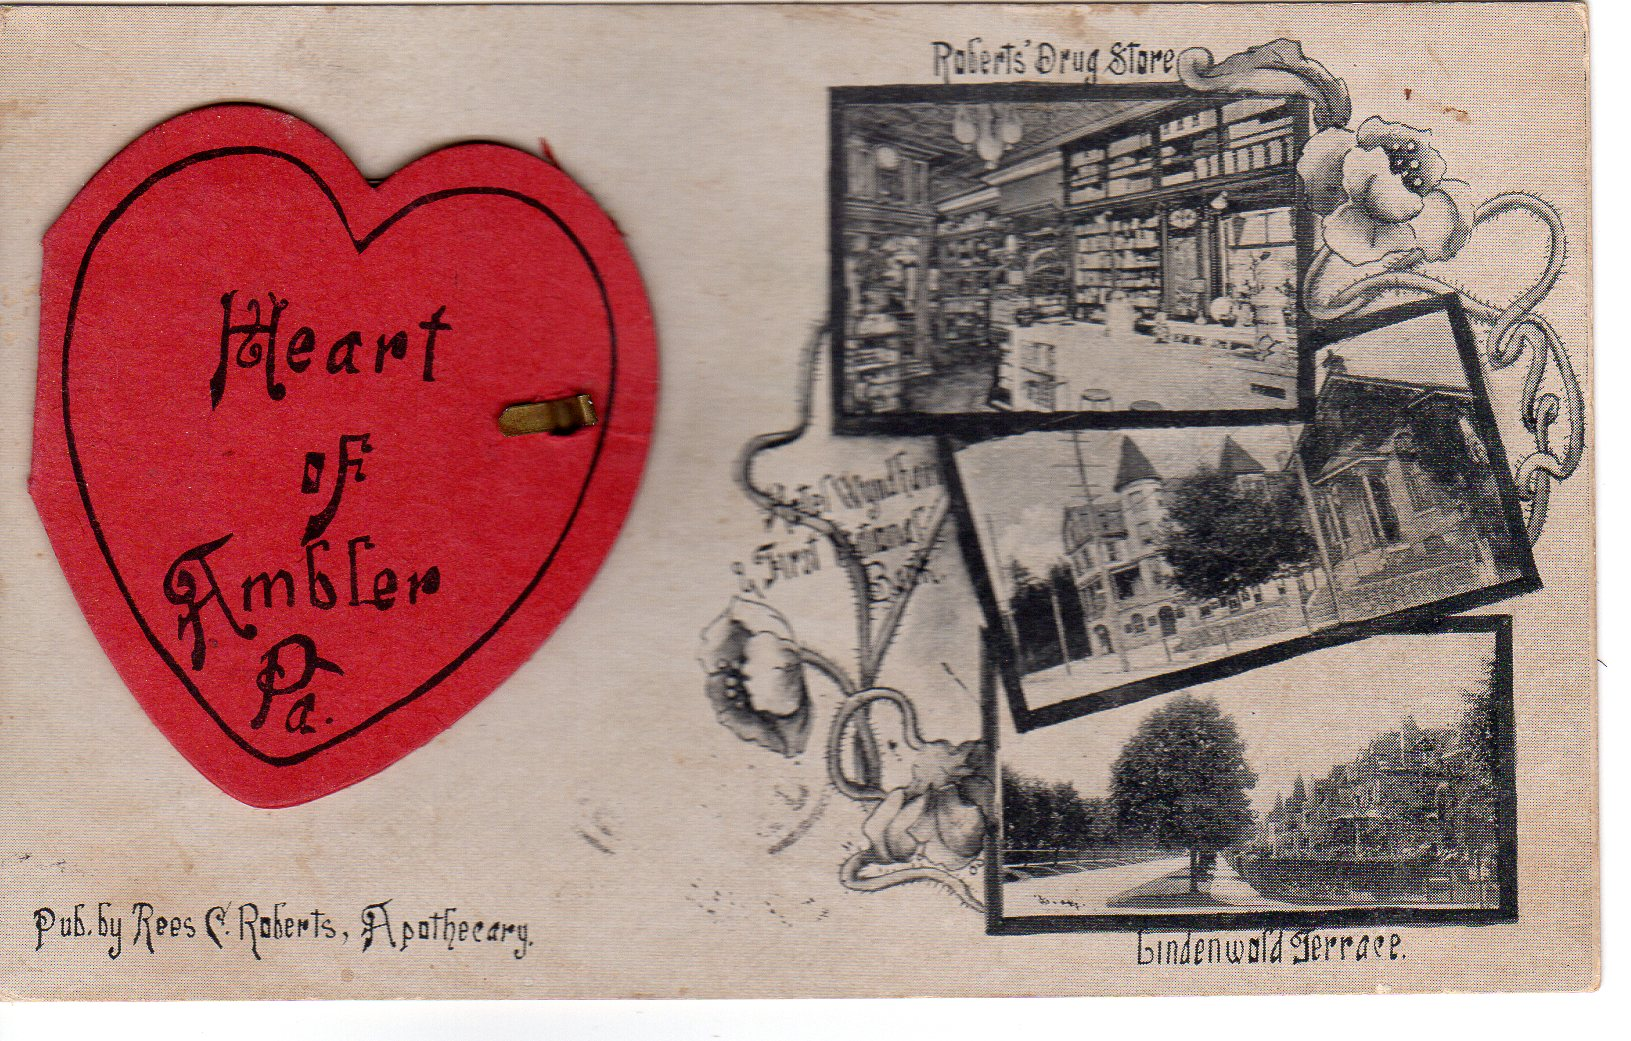 Post Card Collection (E Simon)_2682_05_Heart of Ambler (Roberts Drug Store, Wyndham, First Nat Bank, Lindenwold Terr)_22 Oct 1907